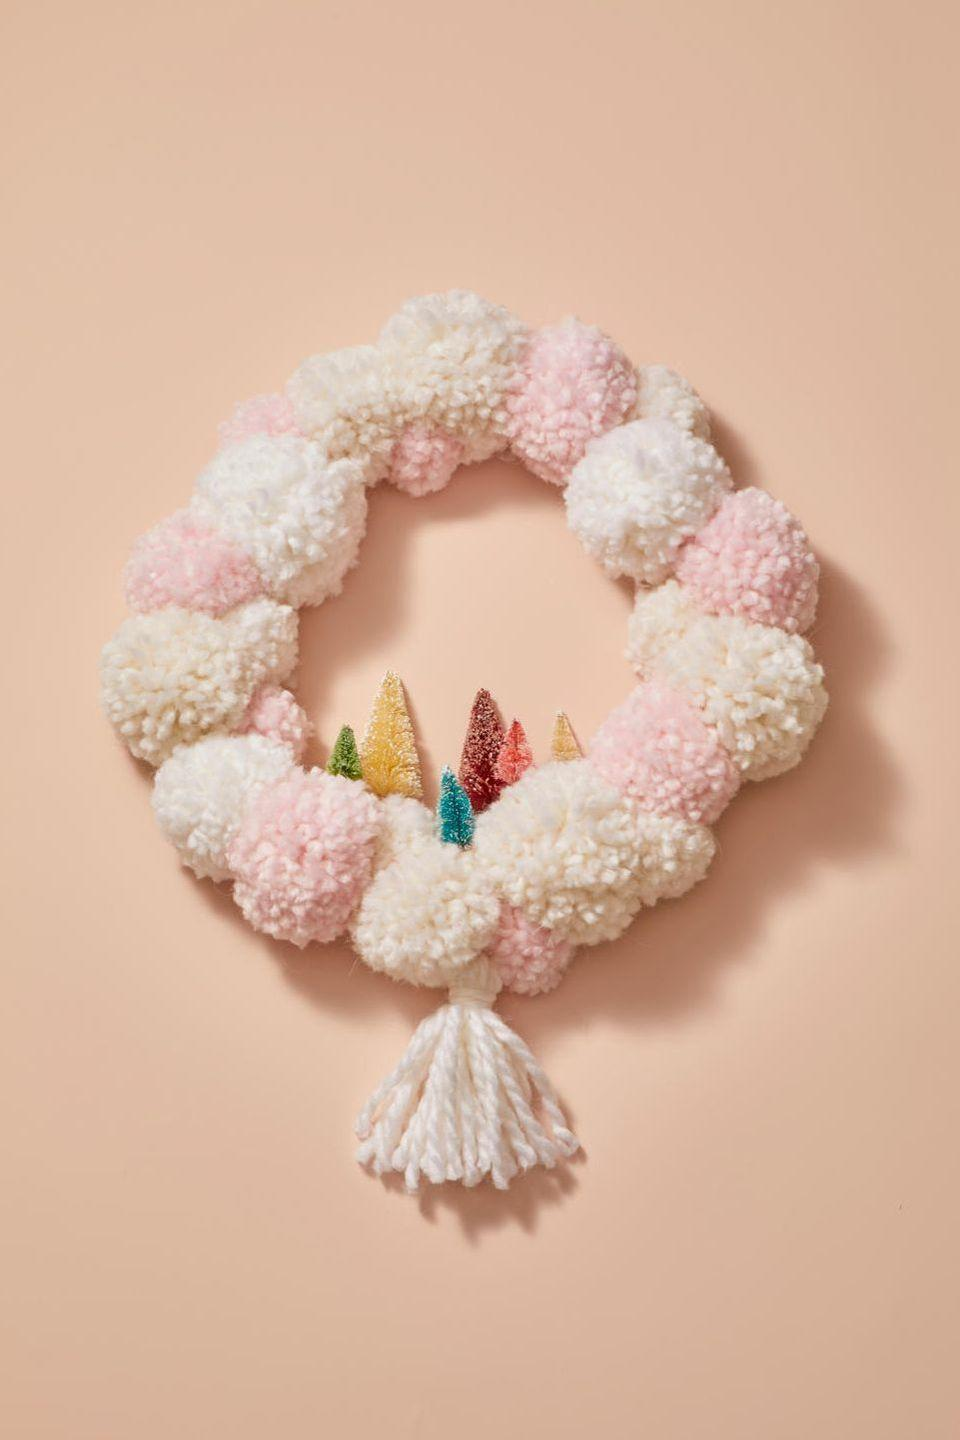 "<p>Once you have an assortment of pom-poms on hand, glue them directly onto a wreath form. Complement the look with a tassel and colorful bottle brush trees. </p><p><strong>RELATED:</strong> <a href=""https://www.goodhousekeeping.com/holidays/christmas-ideas/how-to/g1253/diy-christmas-wreaths/"" rel=""nofollow noopener"" target=""_blank"" data-ylk=""slk:60 Christmas Wreath Ideas for a Jolly Holiday"" class=""link rapid-noclick-resp"">60 Christmas Wreath Ideas for a Jolly Holiday</a></p>"